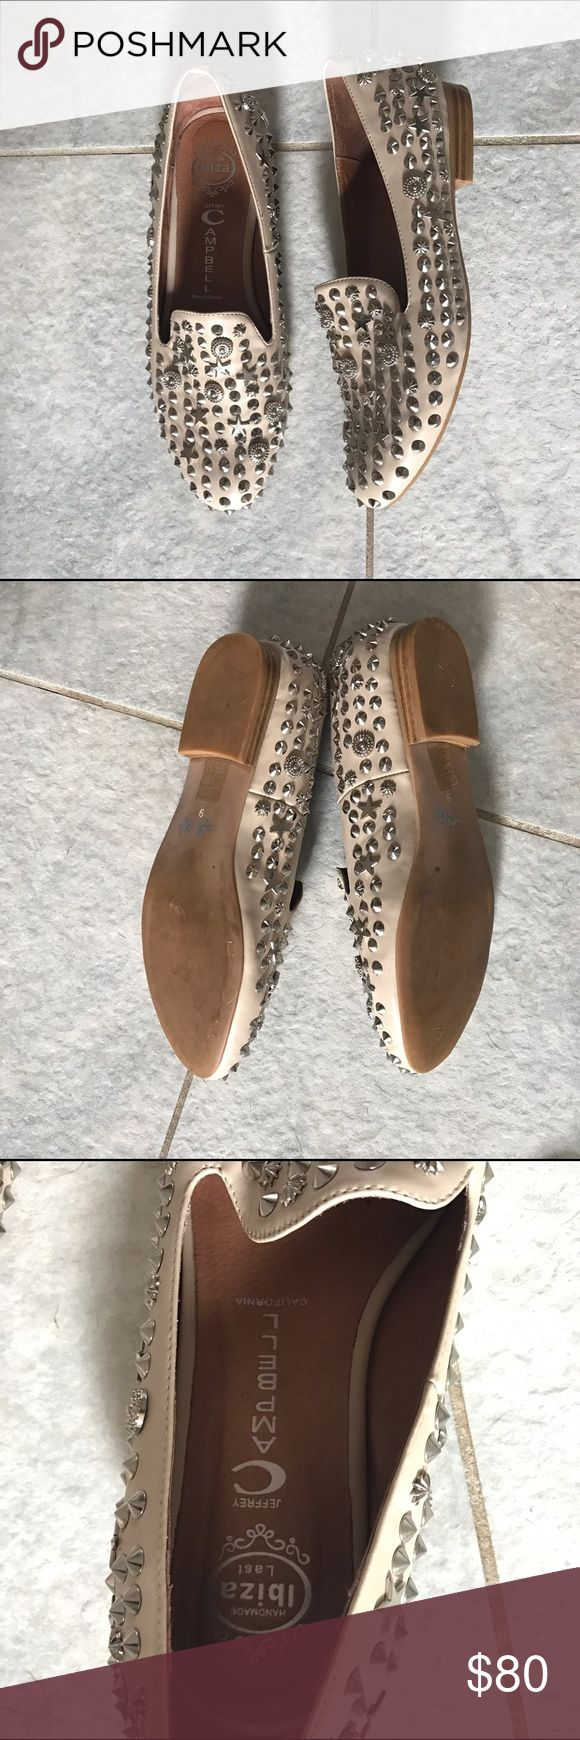 Jeffrey Campbell Studded Loafers Handmade cream studded loafers. There are absolutely no wear marks. The studs are nailed in which means that they are of quality and won't fall off compared to glued ones. Jeffrey Campbell Shoes Flats & Loafers